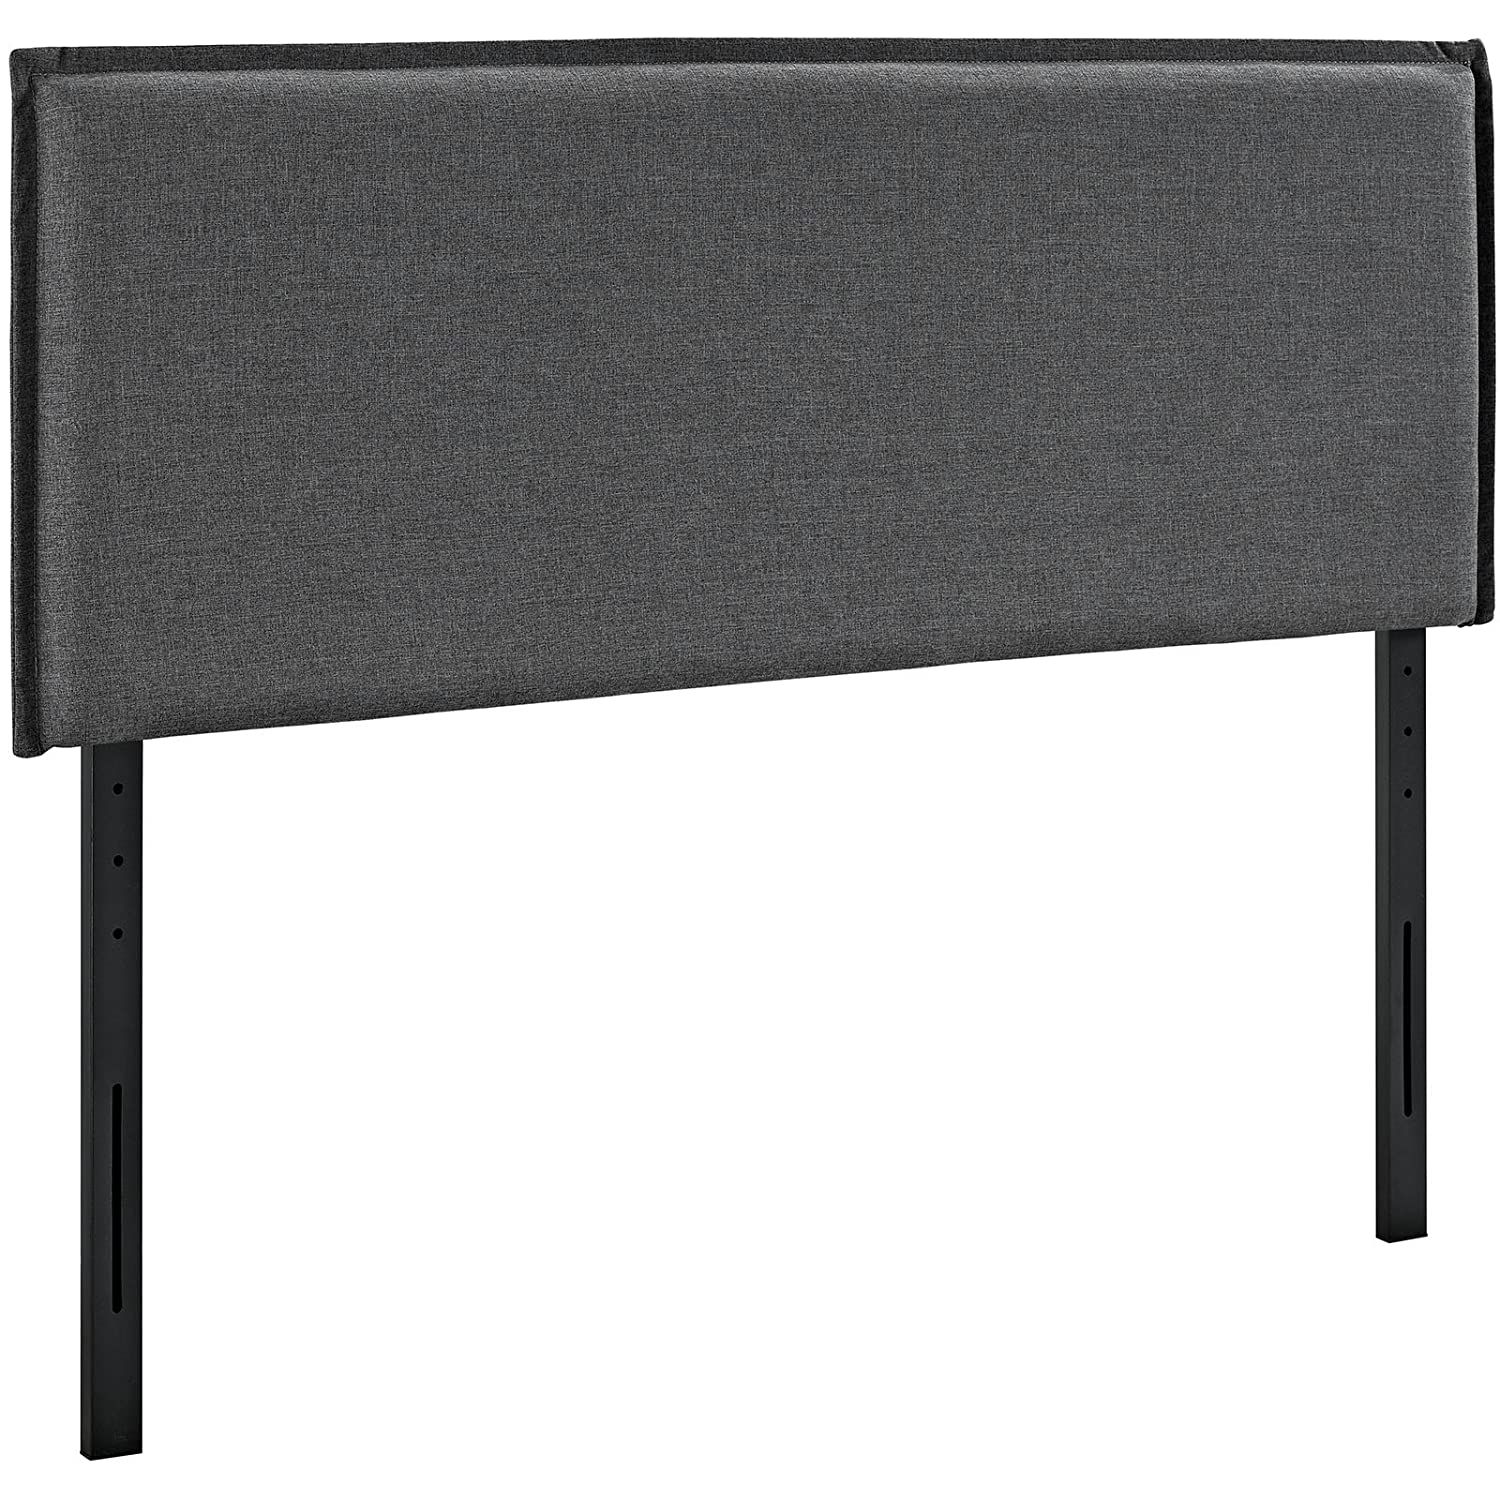 Modway Camille Twin Upholstered Fabric Headboard in Atomic Red Modway© MOD-5405-ATO